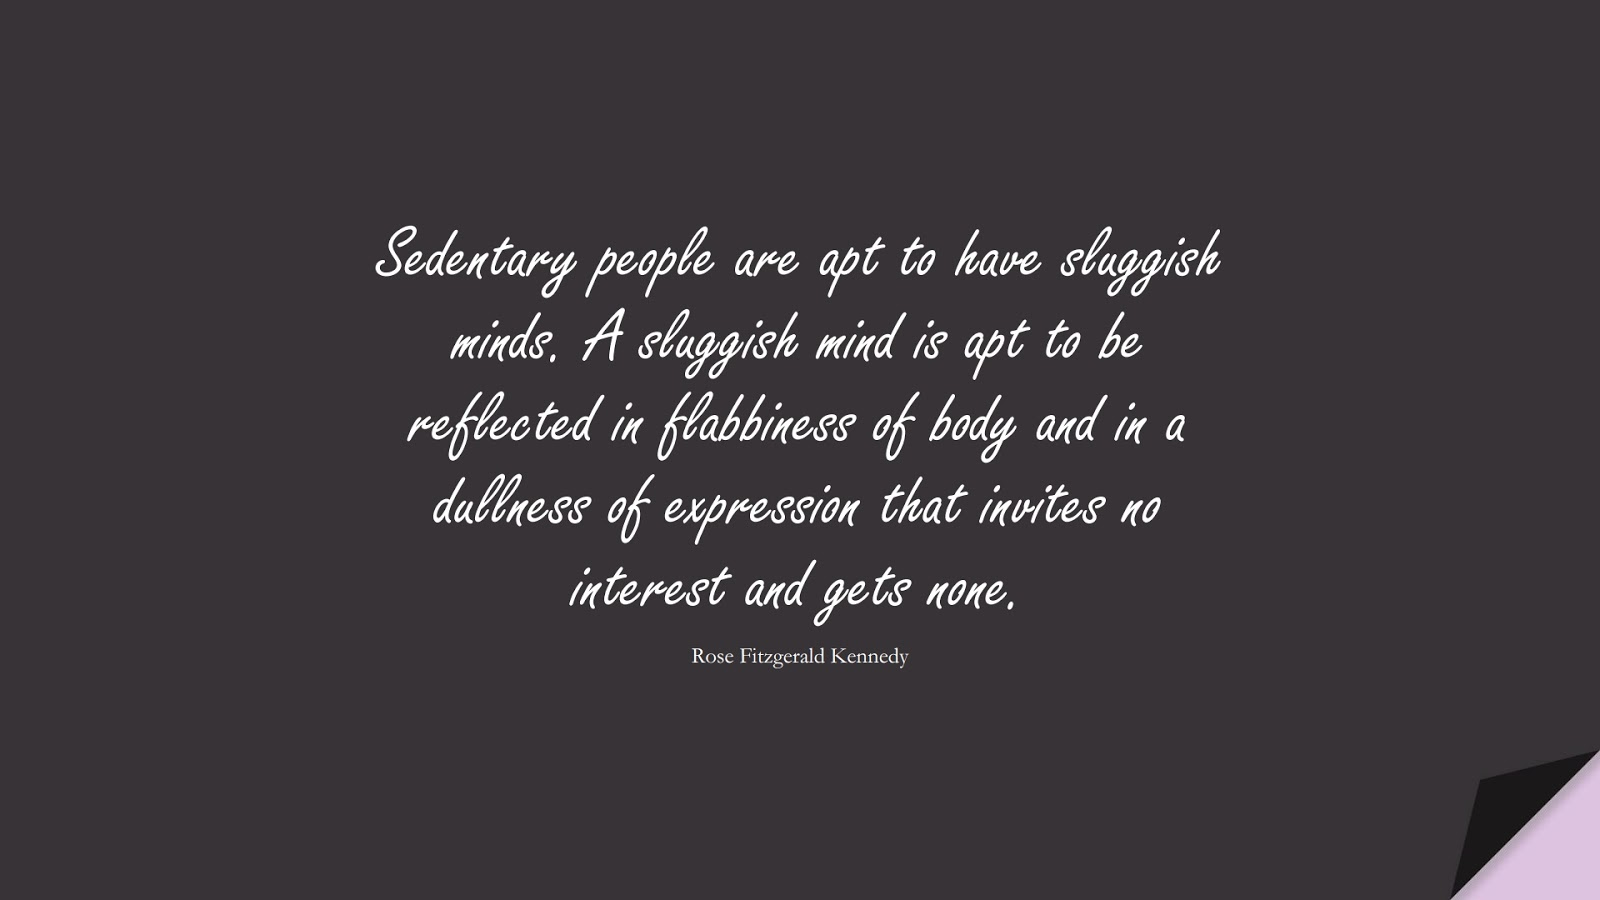 Sedentary people are apt to have sluggish minds. A sluggish mind is apt to be reflected in flabbiness of body and in a dullness of expression that invites no interest and gets none. (Rose Fitzgerald Kennedy);  #HealthQuotes